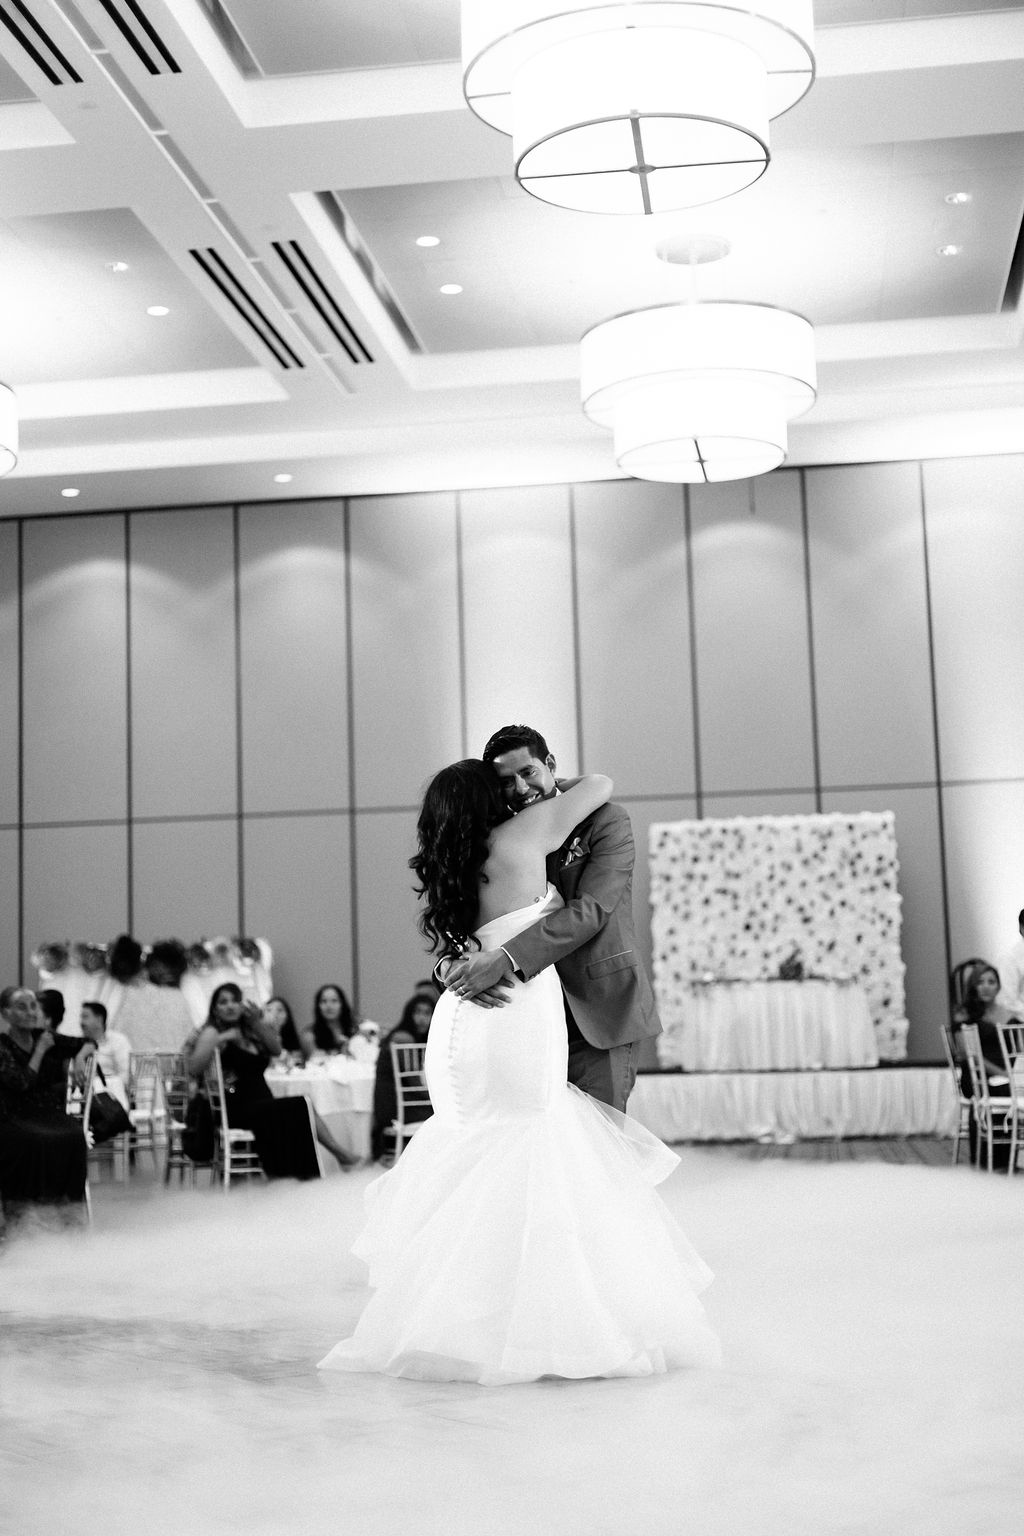 SheratonHotelPomonaWedding-Mabel&Omar(278of390)-2.jpg